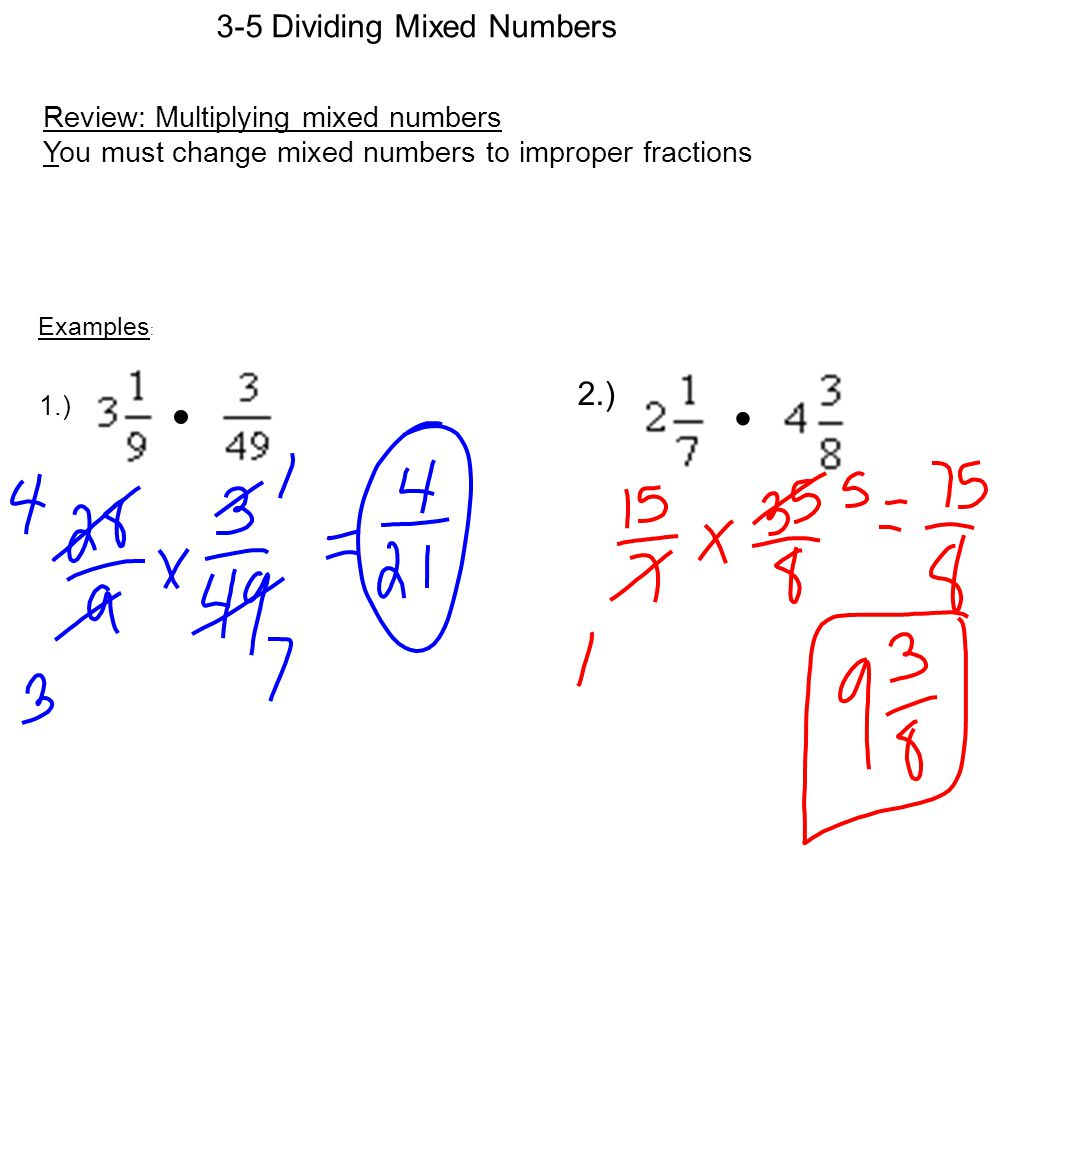 3-5 Dividing Mixed Numbers Review: Multiplying mixed numbers